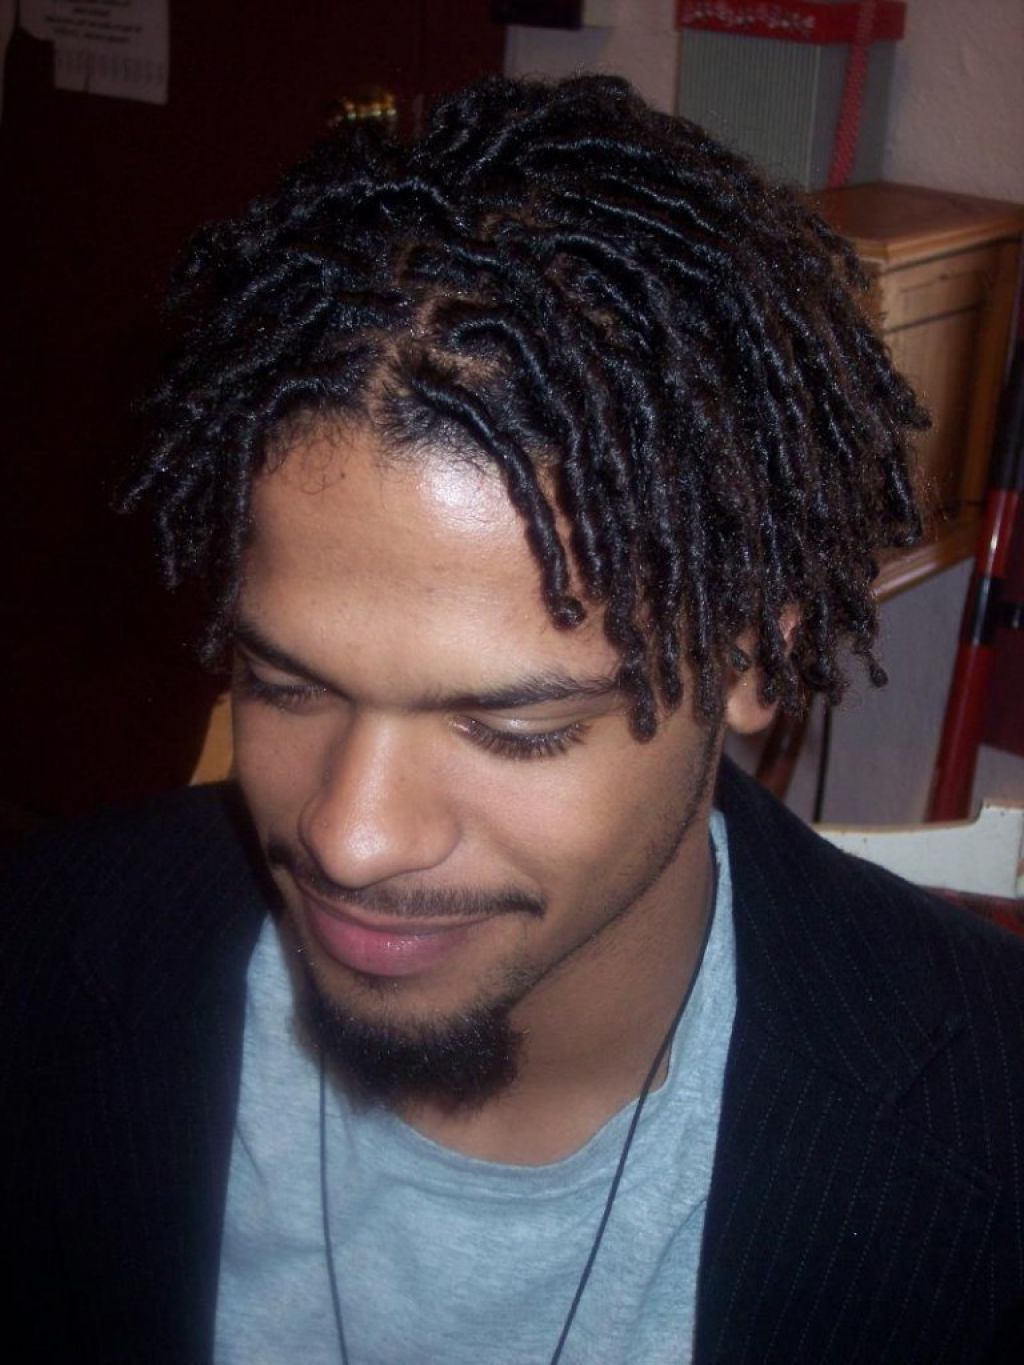 The Cooloest Hair Style For African American Male Hairstyles Is ...